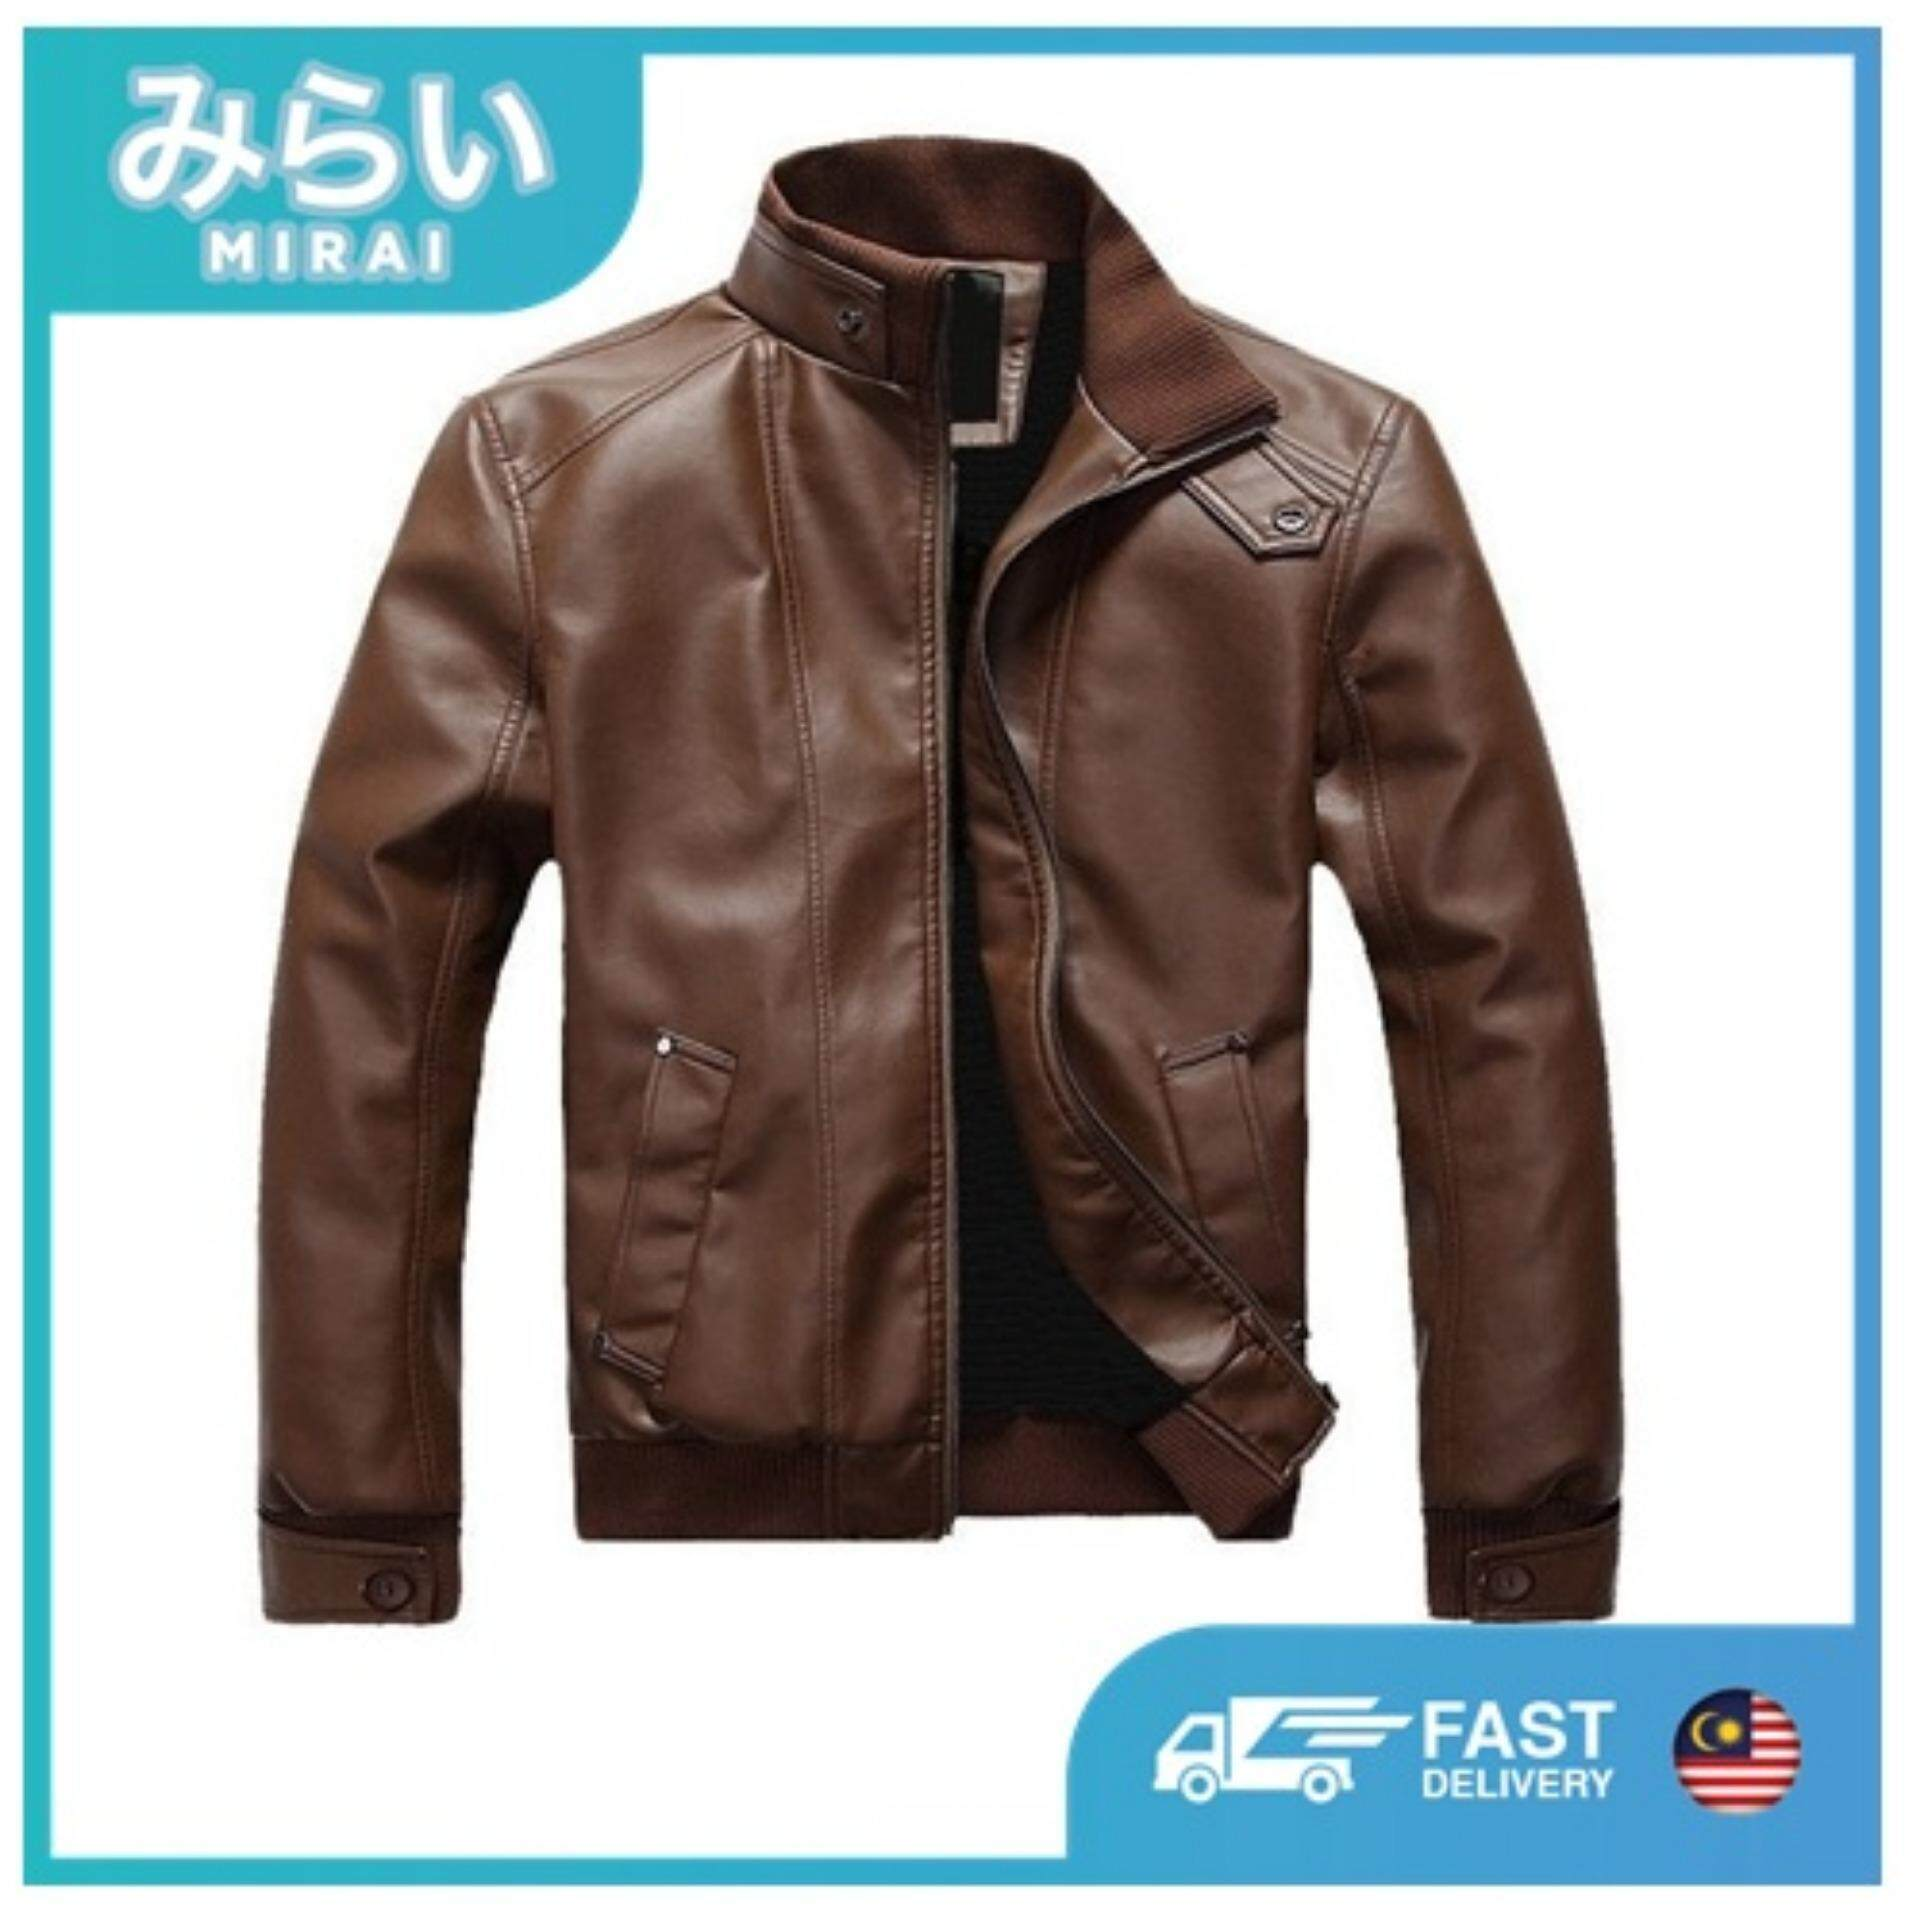 386bc3c7fce MIRAI Men s PU Leather Jacket Outerwear Motorcycle Windbreaker Jaket kulit  berkolar